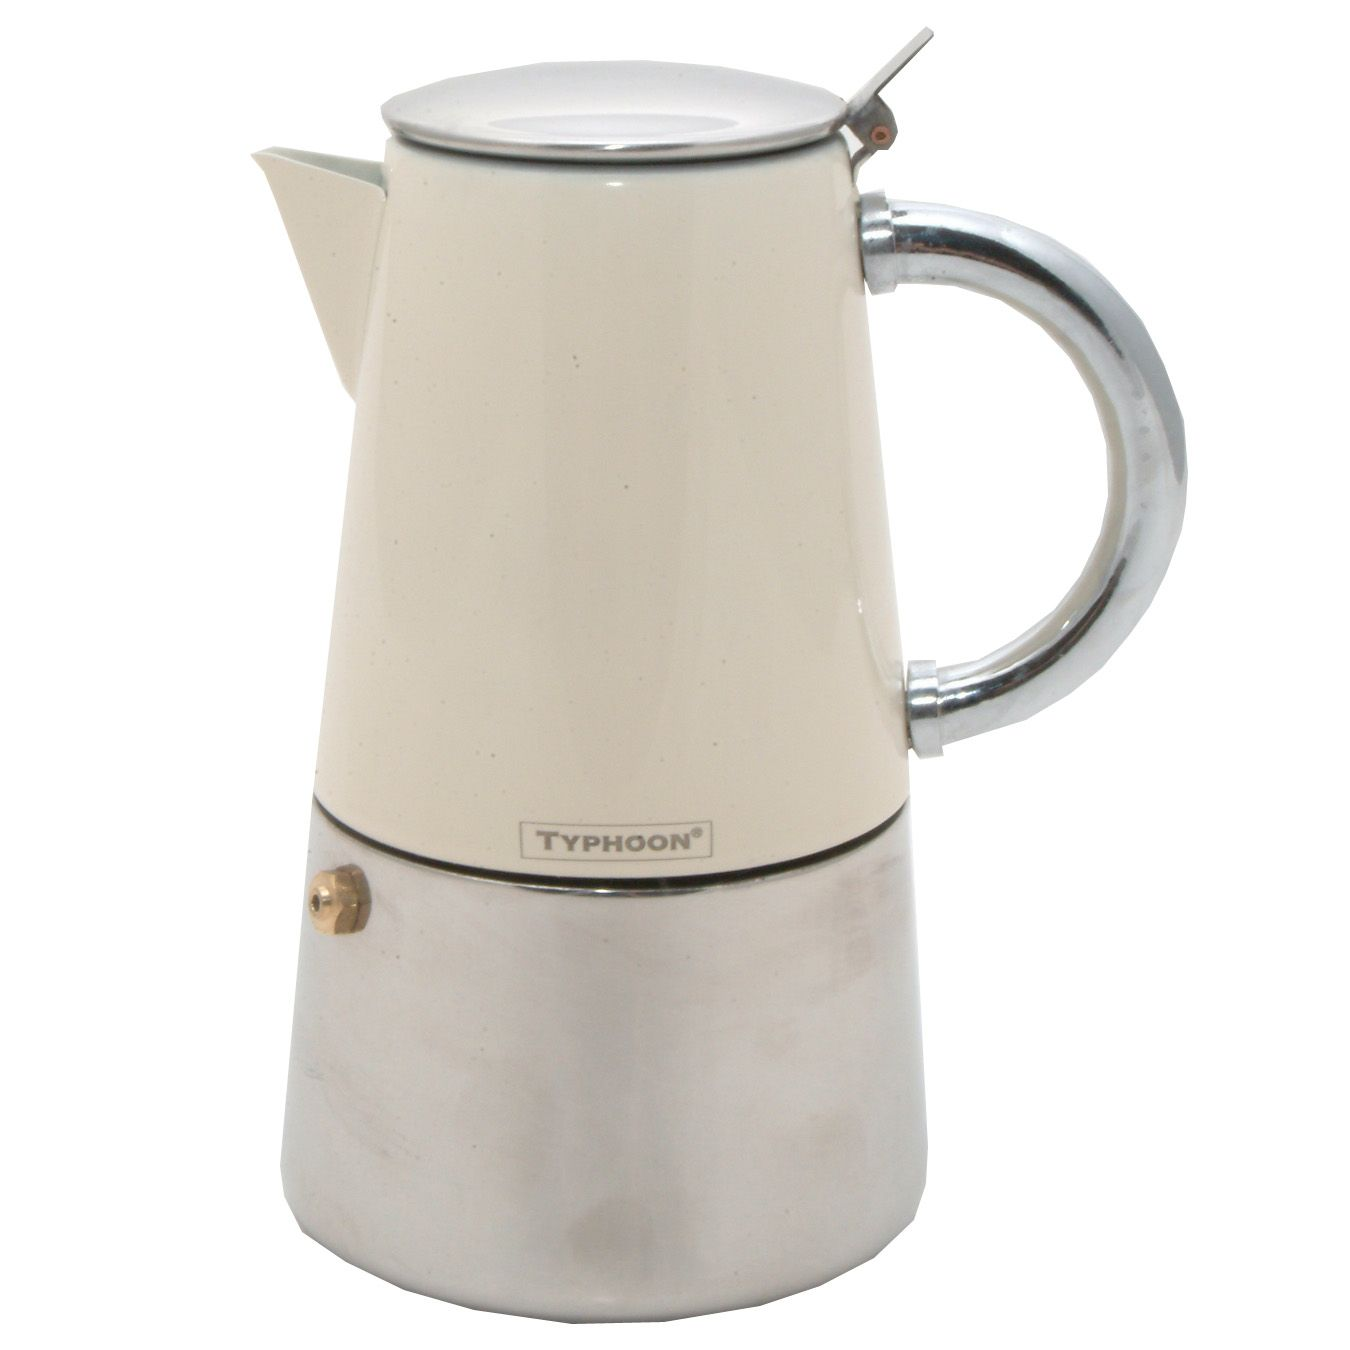 Novo Espresso Maker, Cream